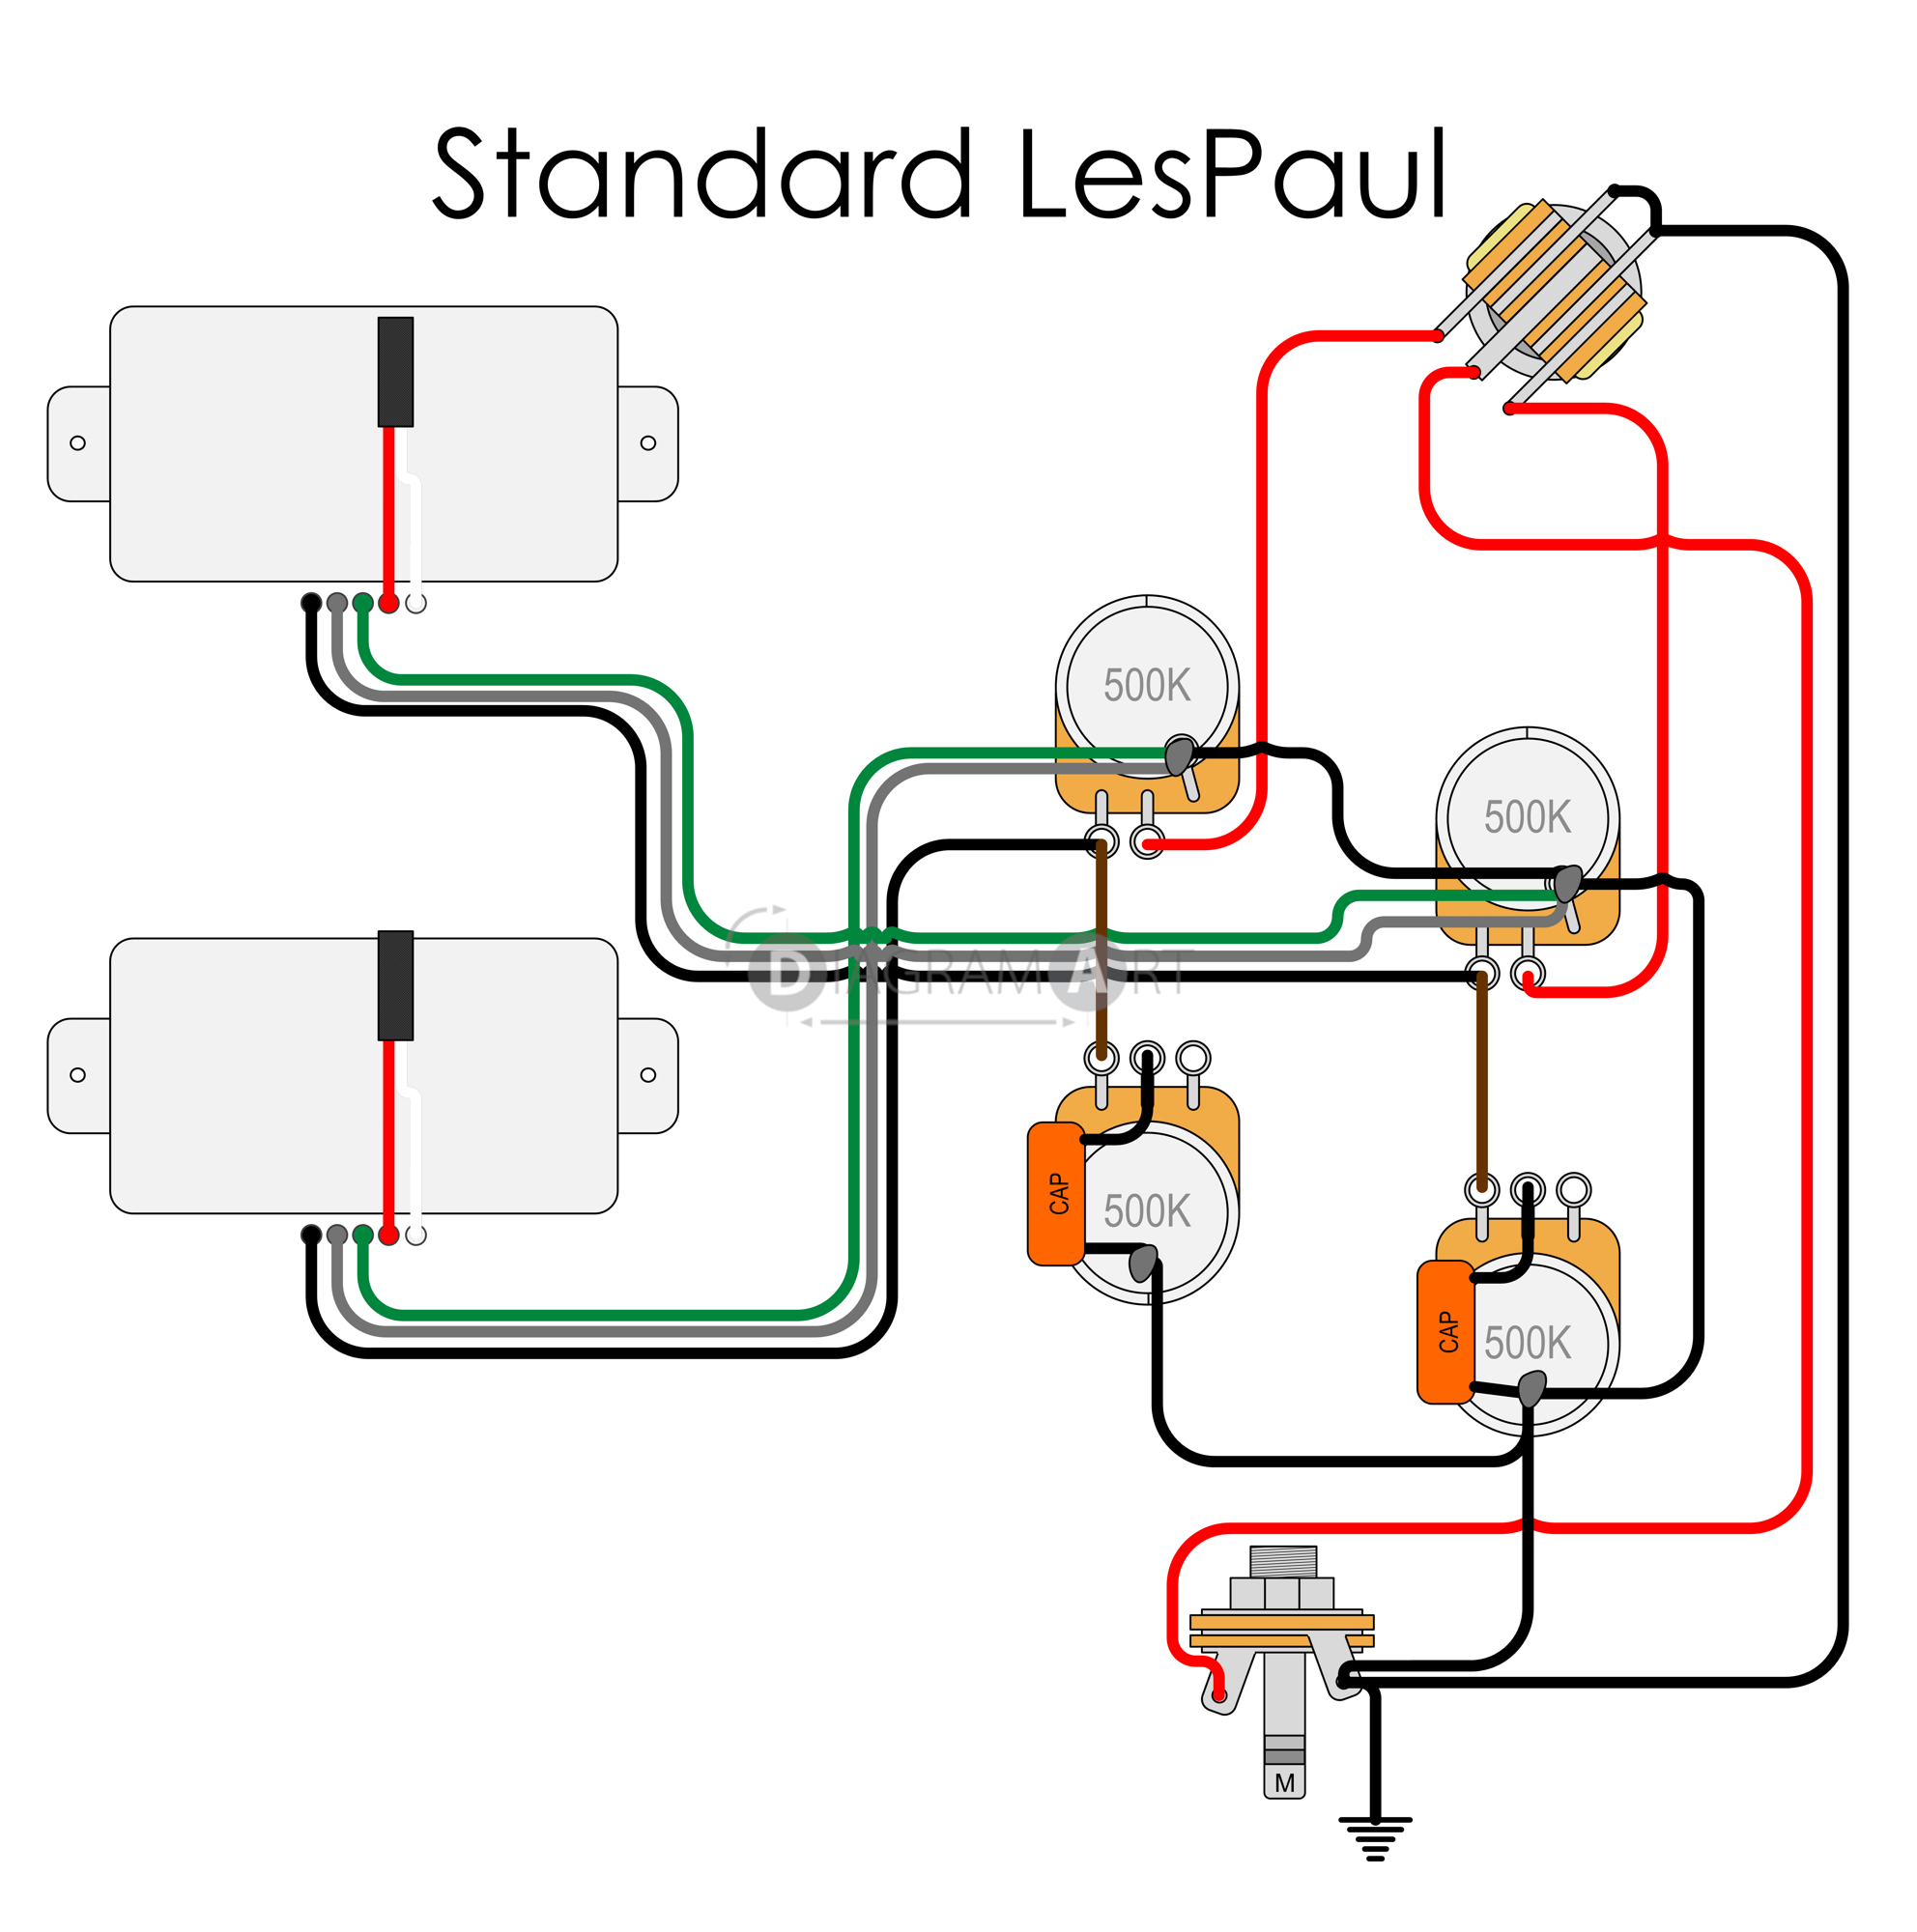 Epiphone Les Paul Standard Wiring Diagram | Wiring Schematic ... on epiphone les paul special 2 wiring diagram, les paul studio wiring diagram, gibson les paul classic wiring diagram, epiphone les paul custom pro wiring diagram, 1959 les paul wiring diagram, les paul standard wiring diagram, slash les paul wiring diagram,